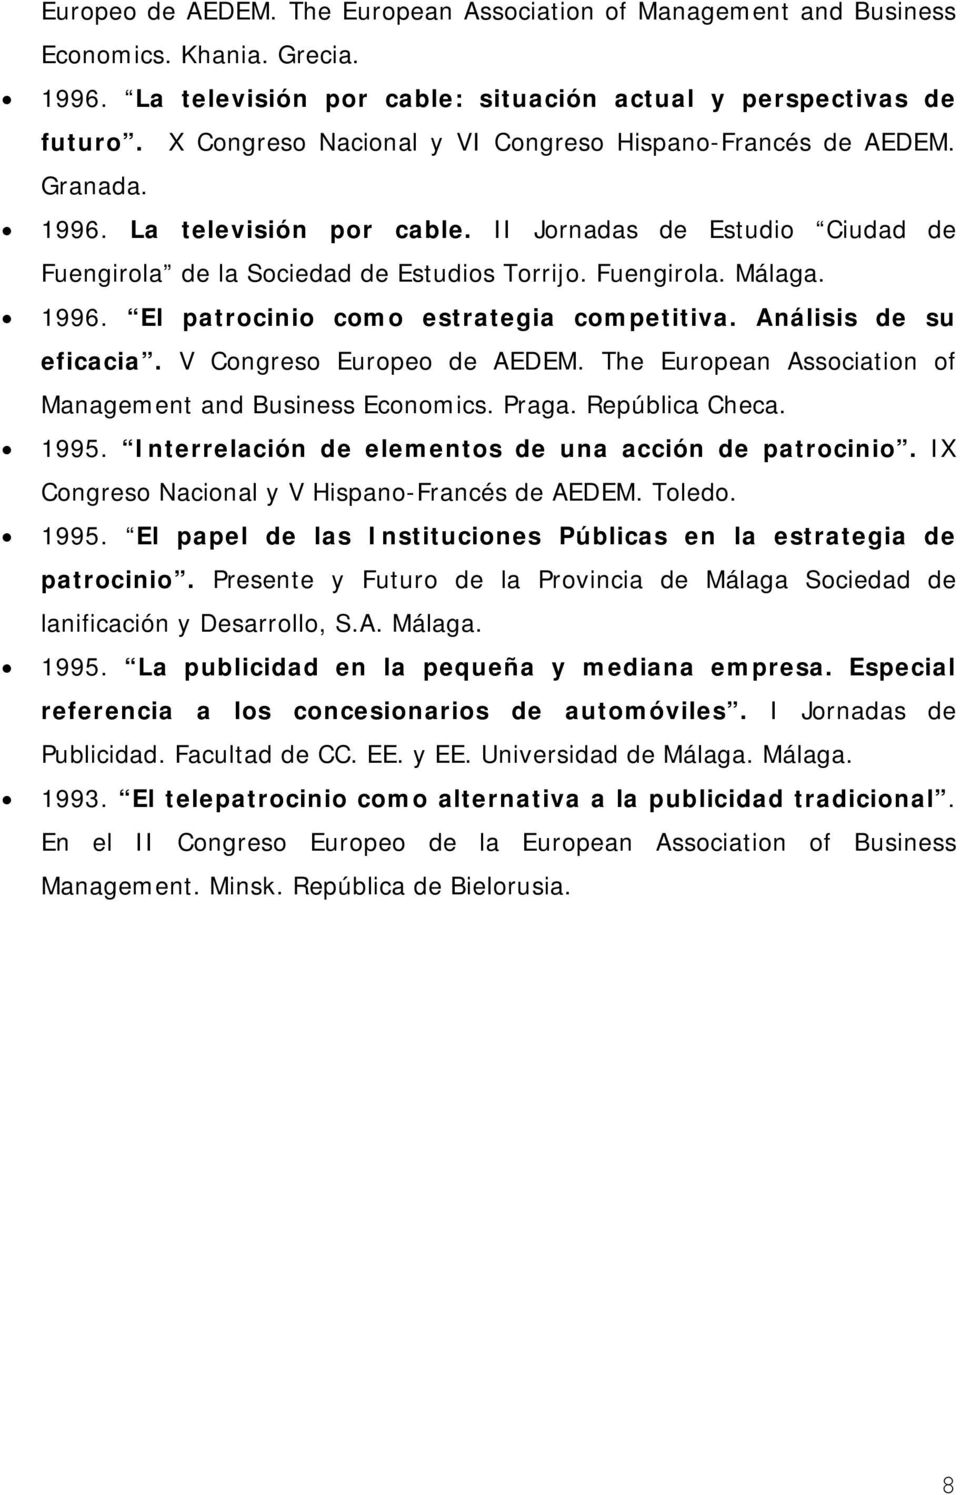 1996. El patrocinio como estrategia competitiva. Análisis de su eficacia. V Congreso Europeo de AEDEM. The European Association of Management and Business Economics. Praga. República Checa. 1995.